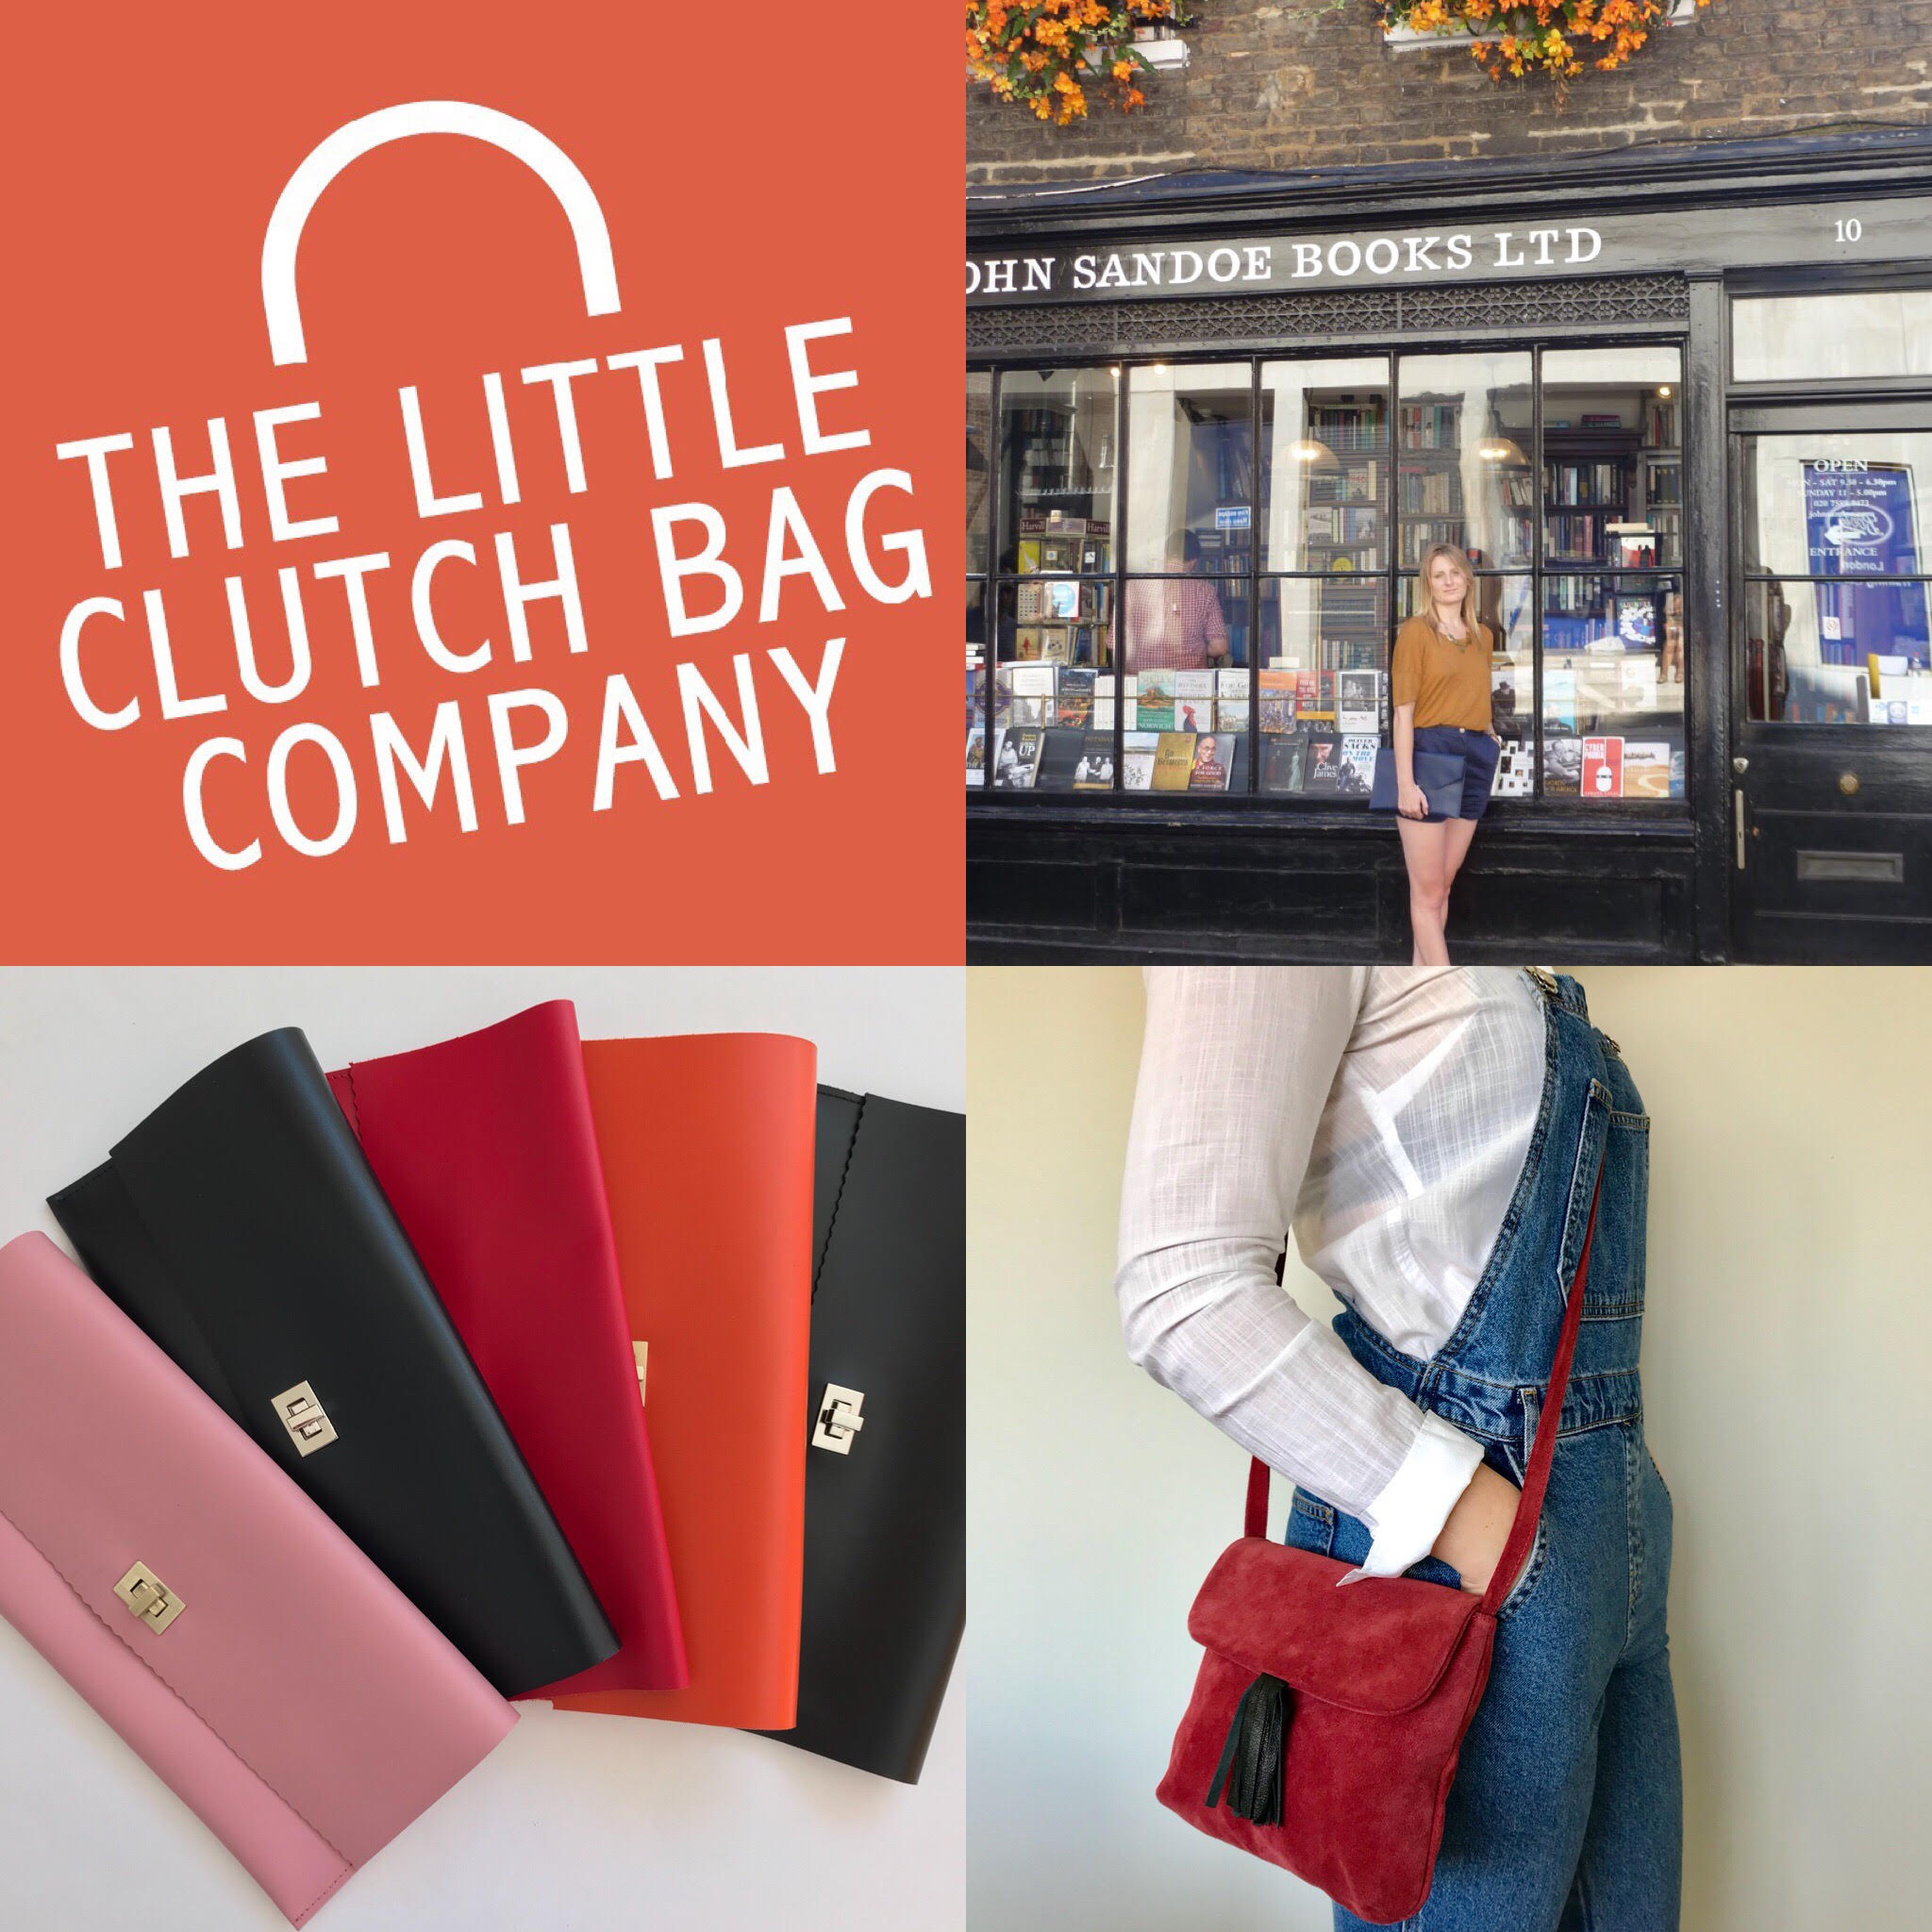 THE LITTLE CLUTCH BAG COMPANY LIMITED